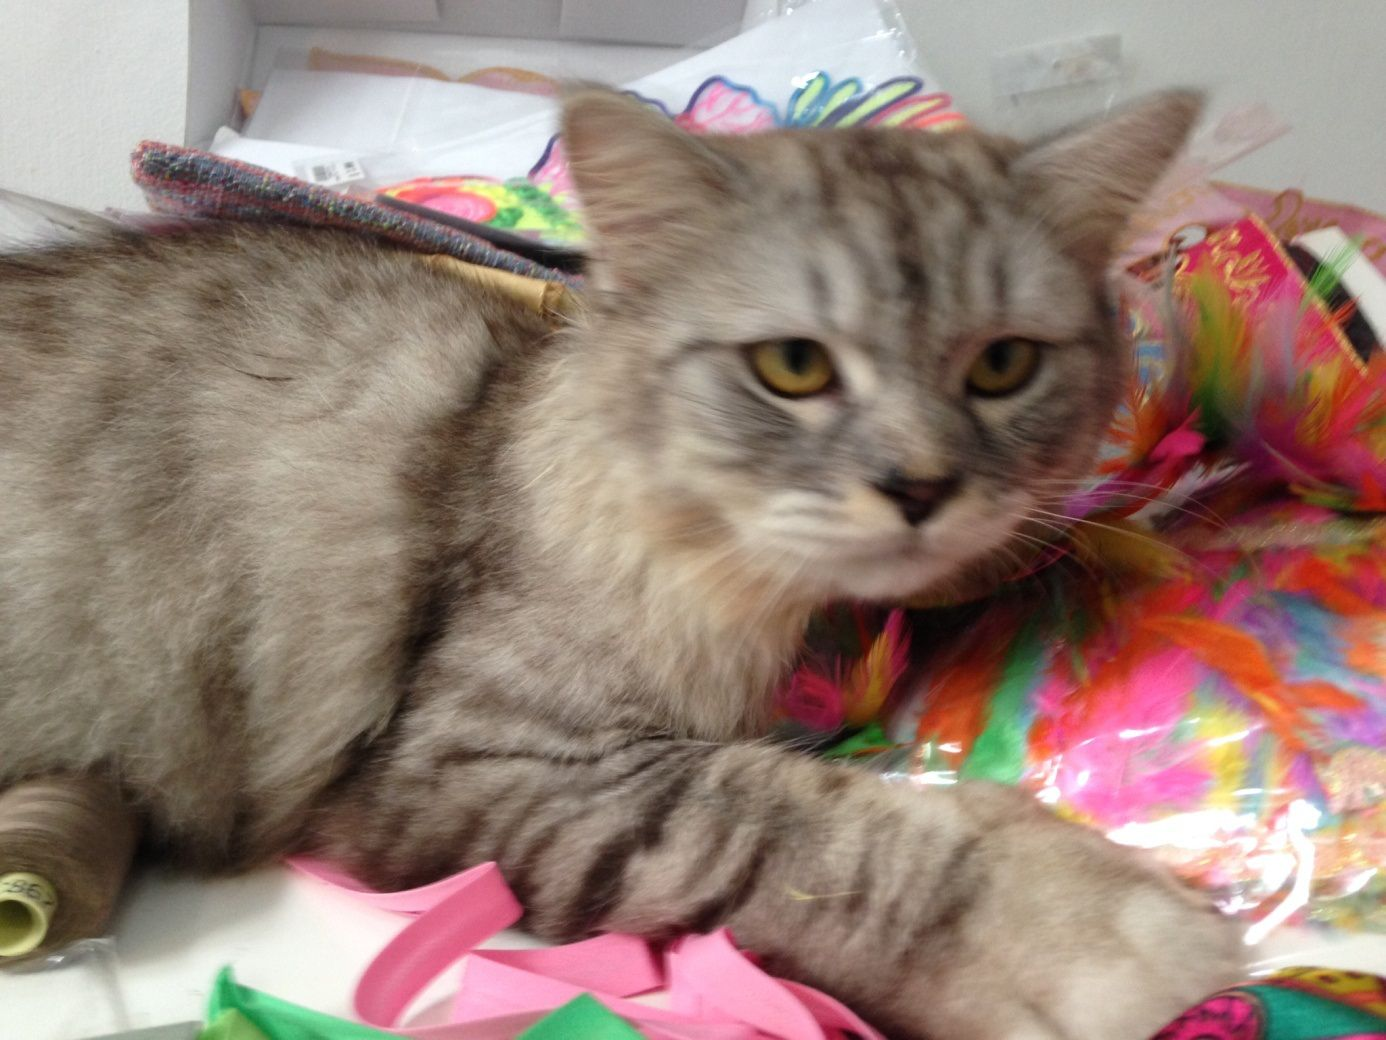 Have You Seen Gucci A Missing Ragamuffin Cat Lost At Sembawang Springs Estate Name Of Pet Gucci Breed Ragamuffin Color Grey And Gold With White Paw Gend